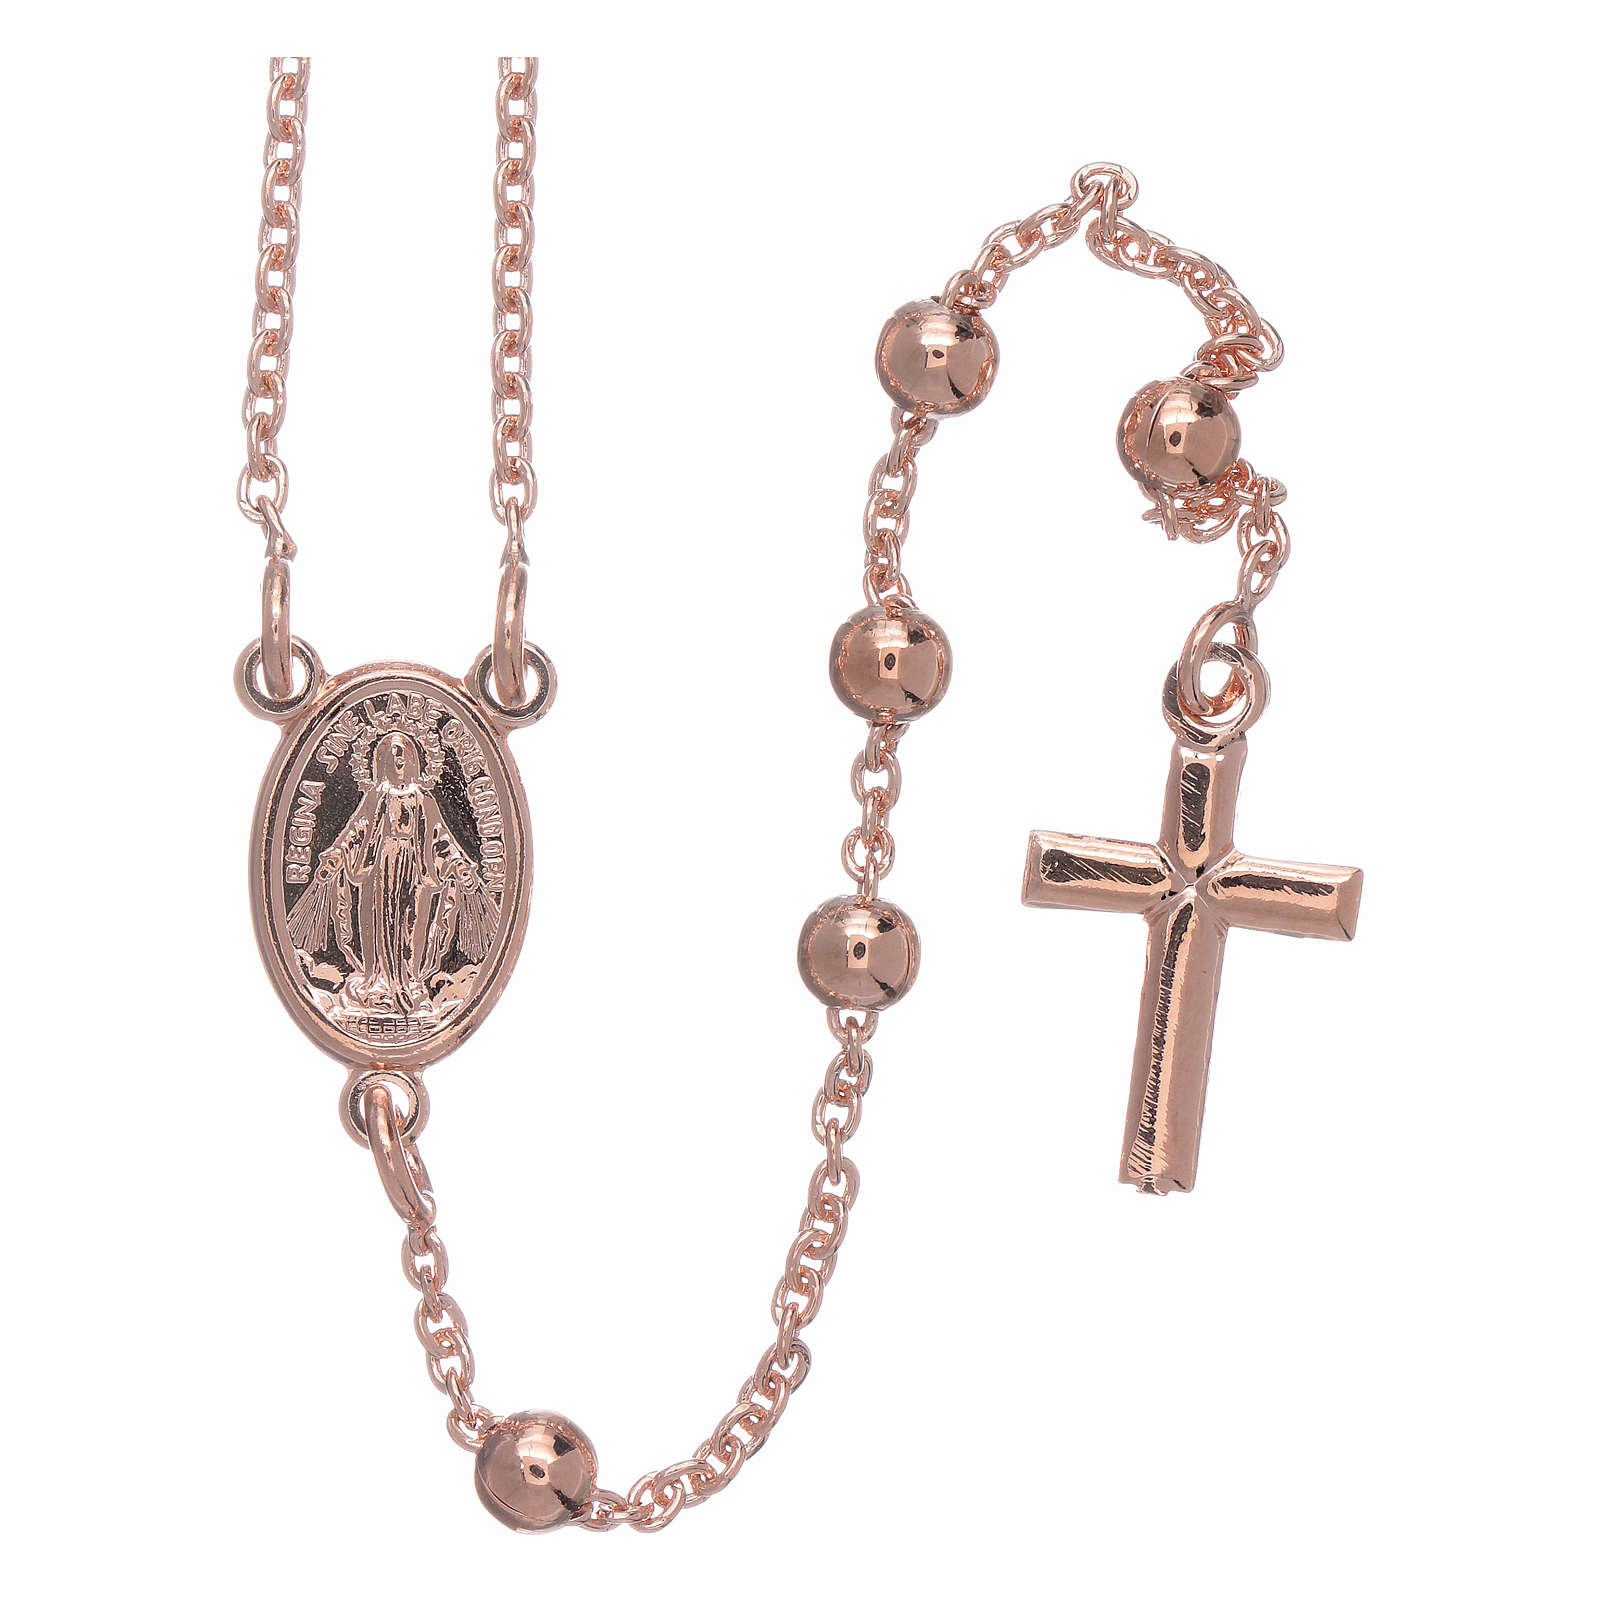 Collana rosario AMEN diam 4 mm bronzo Rosè 4